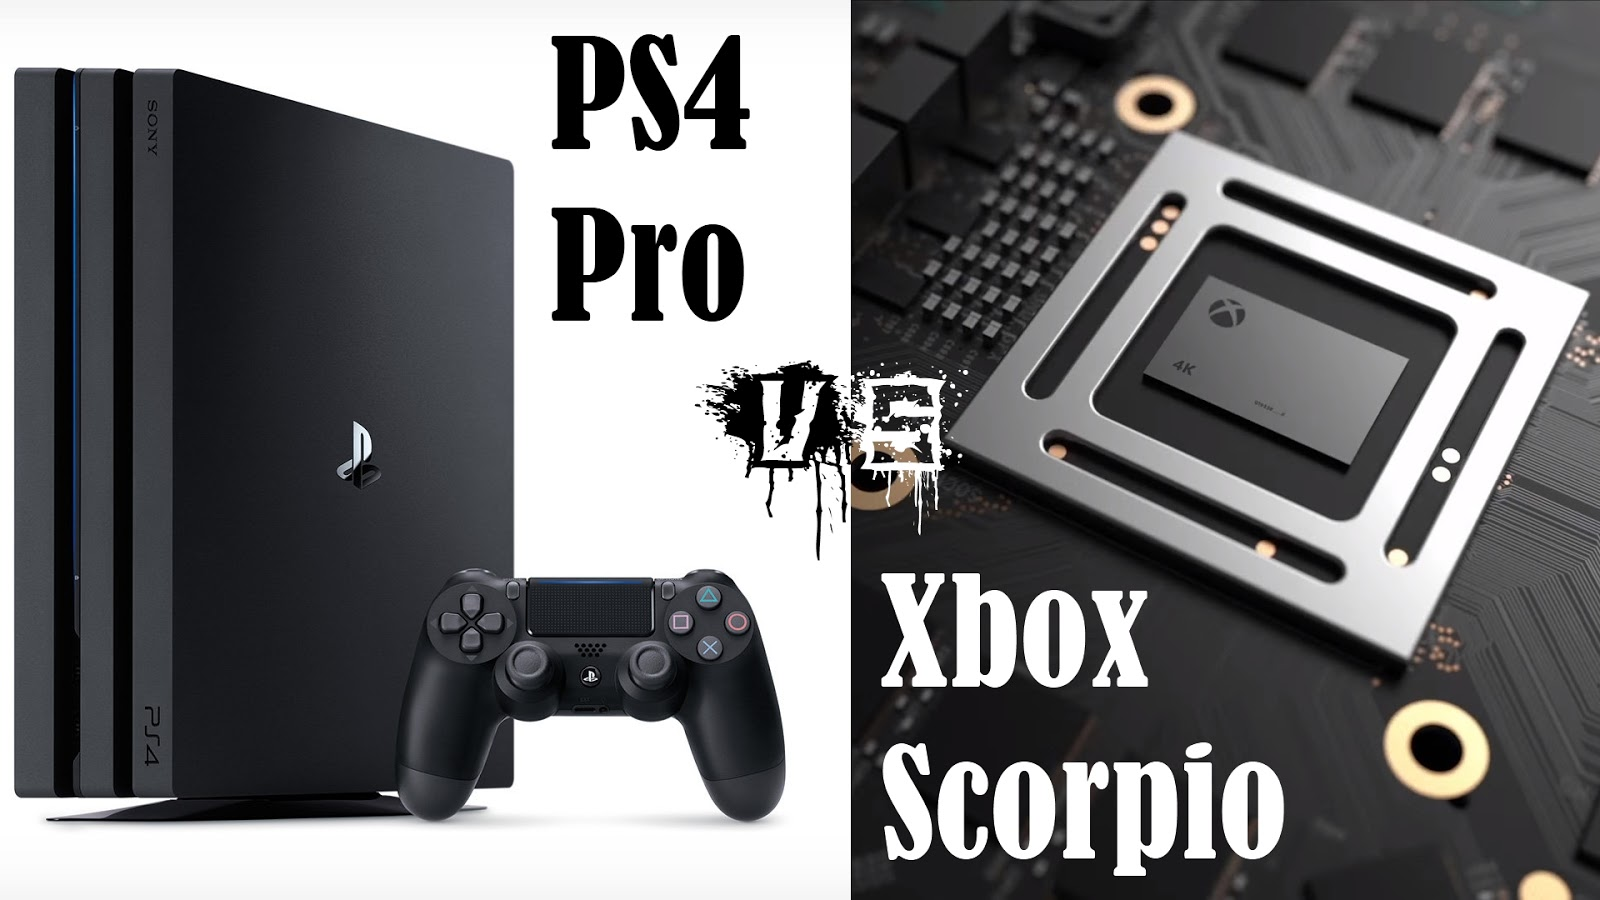 vebos ps4 pro  The Movie Sleuth: Videos: Xbox Scorpio vs PS4 Pro Specs - The FINAL ...